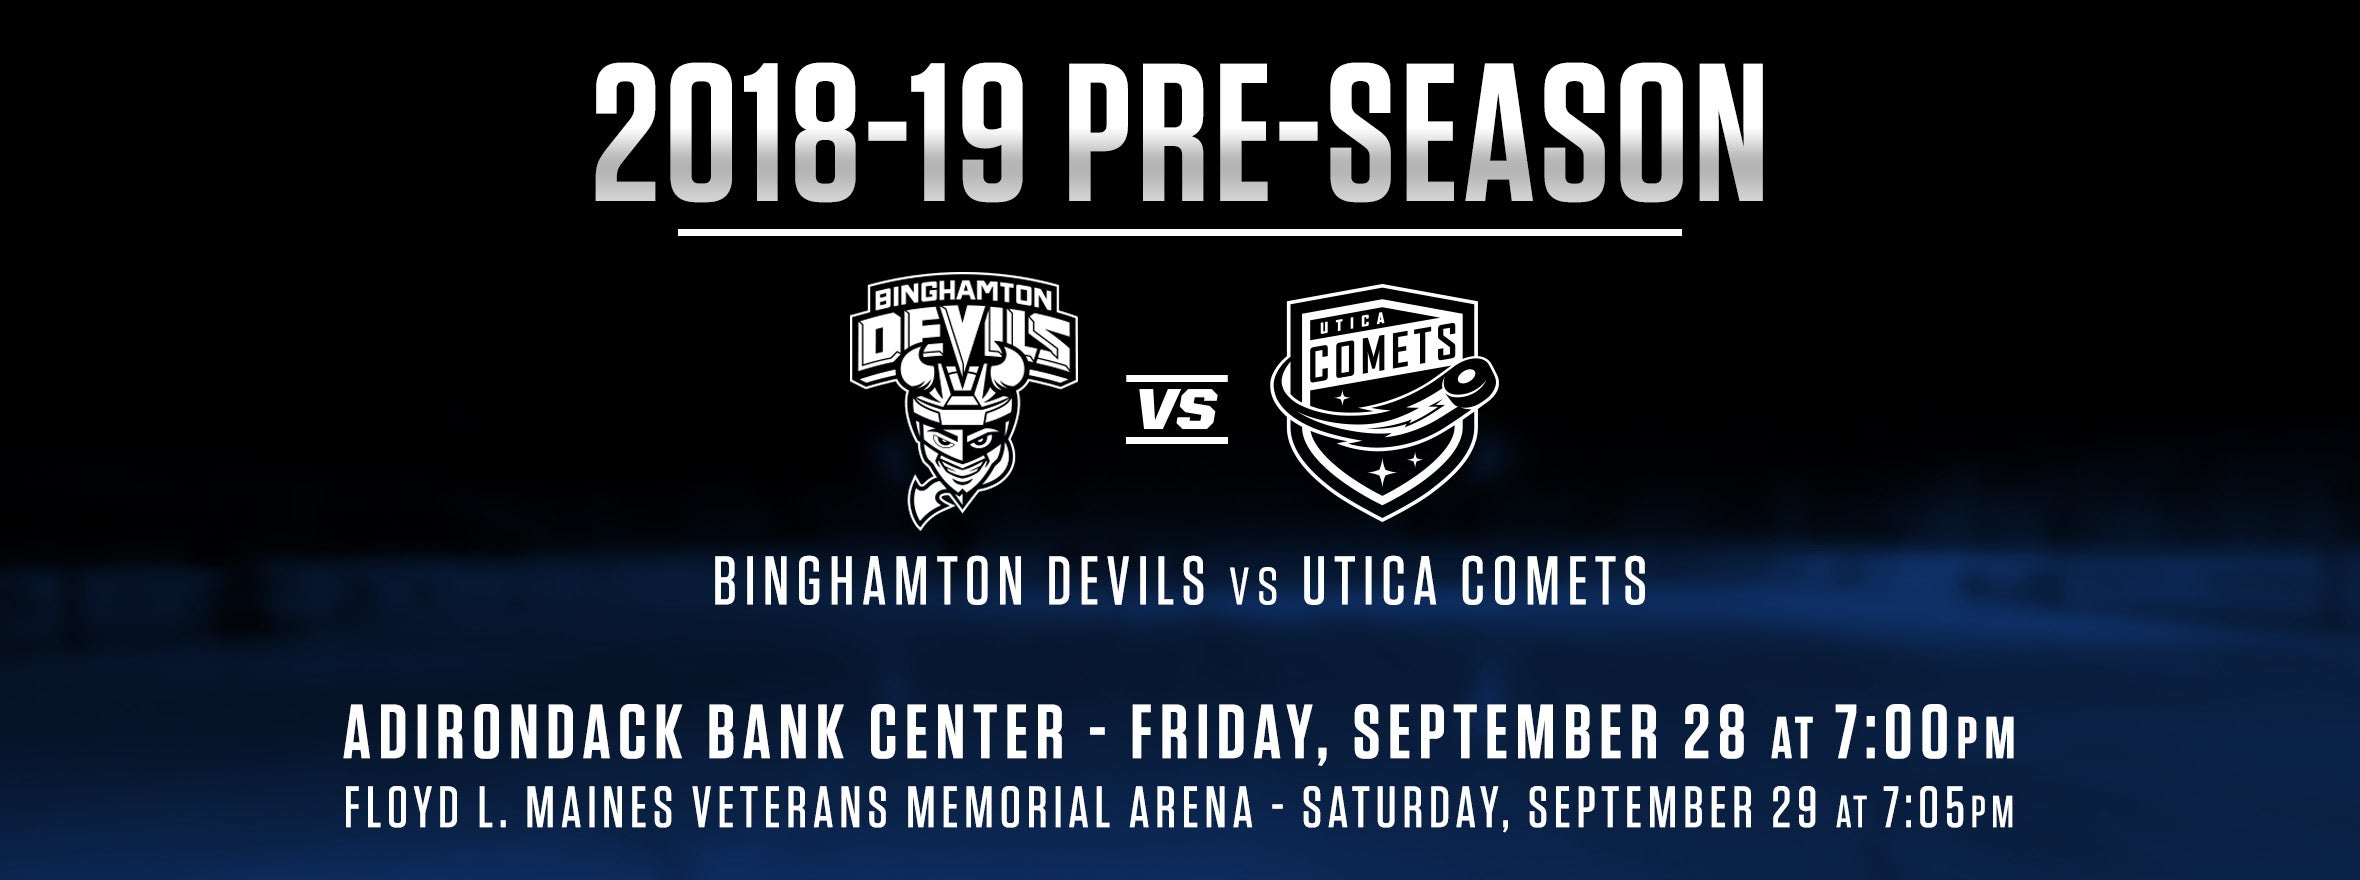 COMETS ANNOUNCE PRESEASON SCHEDULE